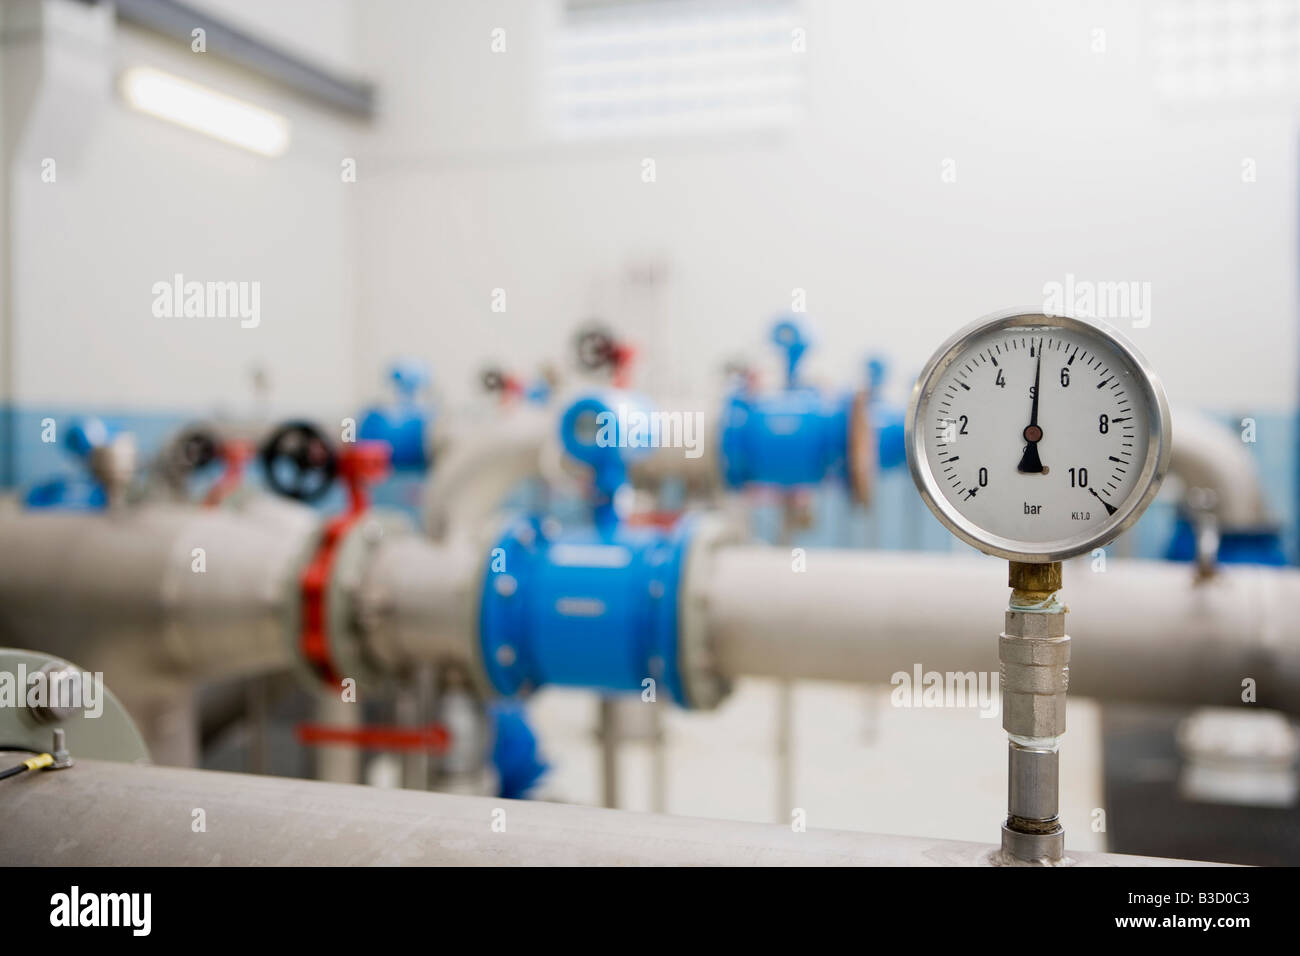 Industrial beer processing equipment in brewery - Stock Image